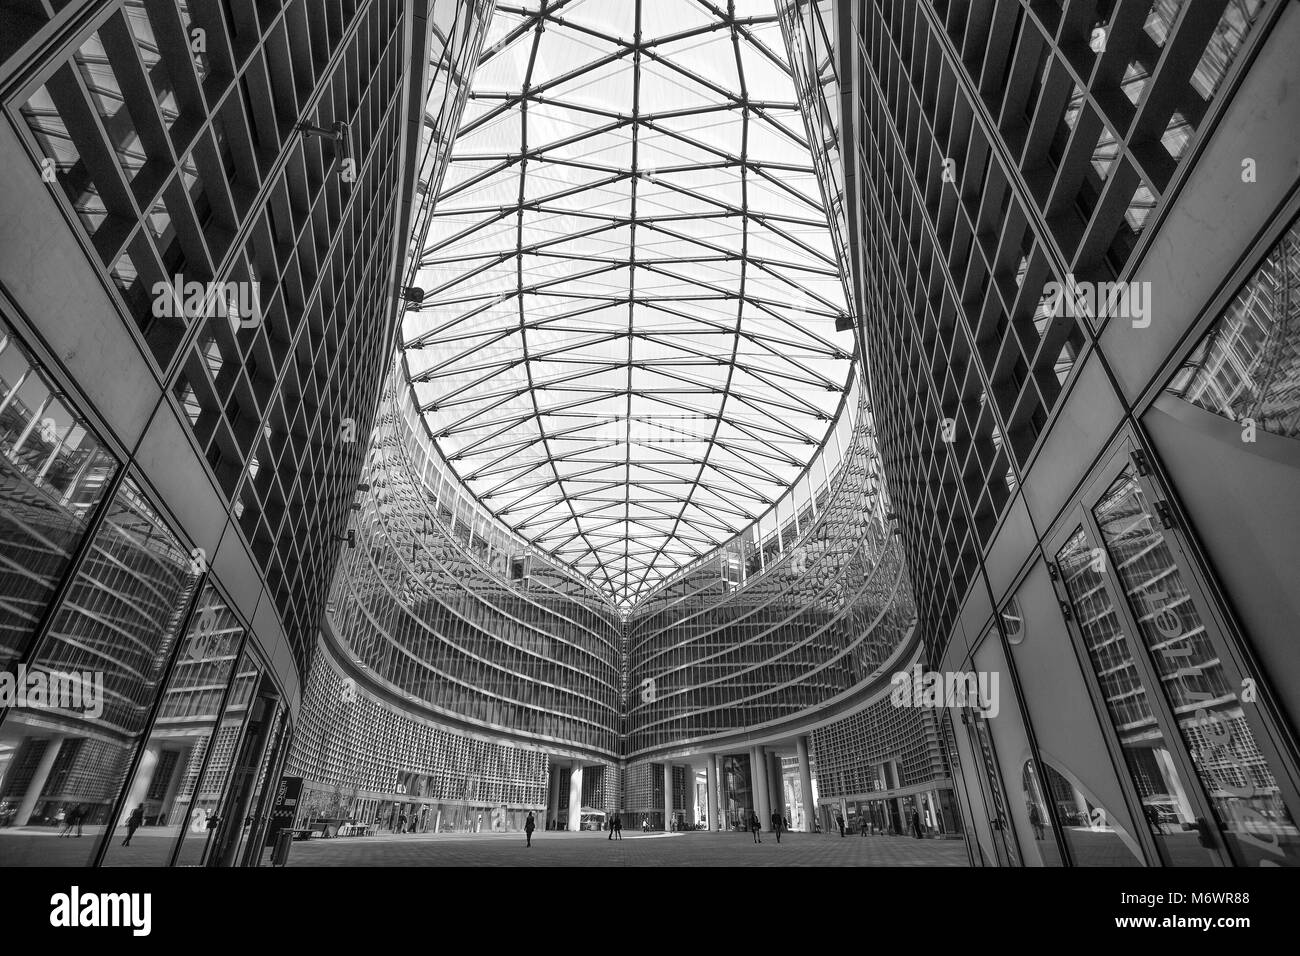 MILAN, ITALY, MARCH 28, 2017. Inner courtyard of Palace of the Regional Government of Lombardy, modern architecture, - Stock Image